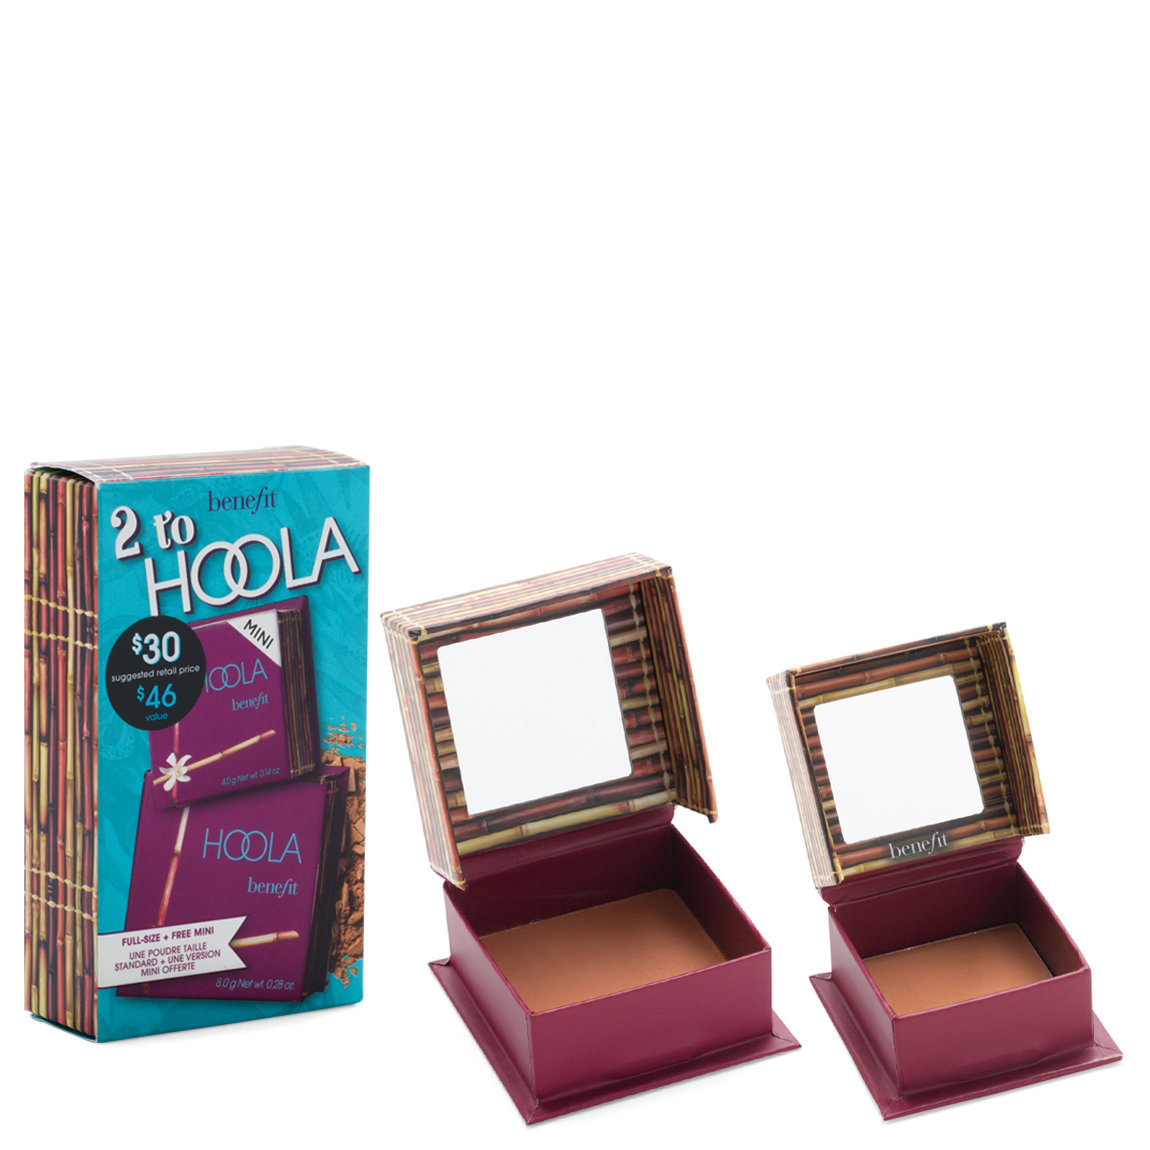 Benefit Cosmetics 2 to Hoola Bronzer Set product smear.